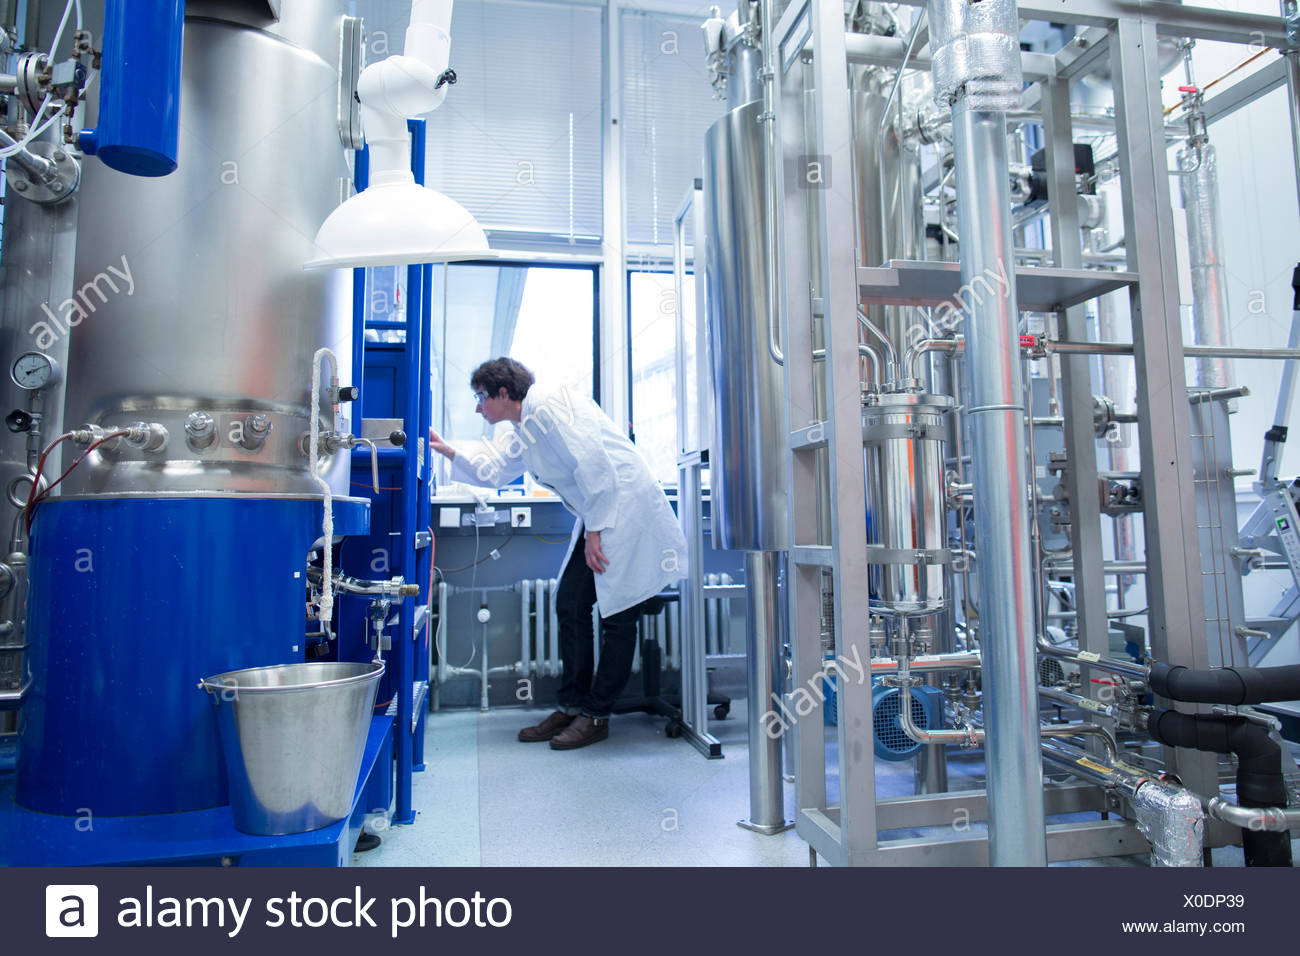 Woman with lab coat in technical room with a fermenter - Stock Image